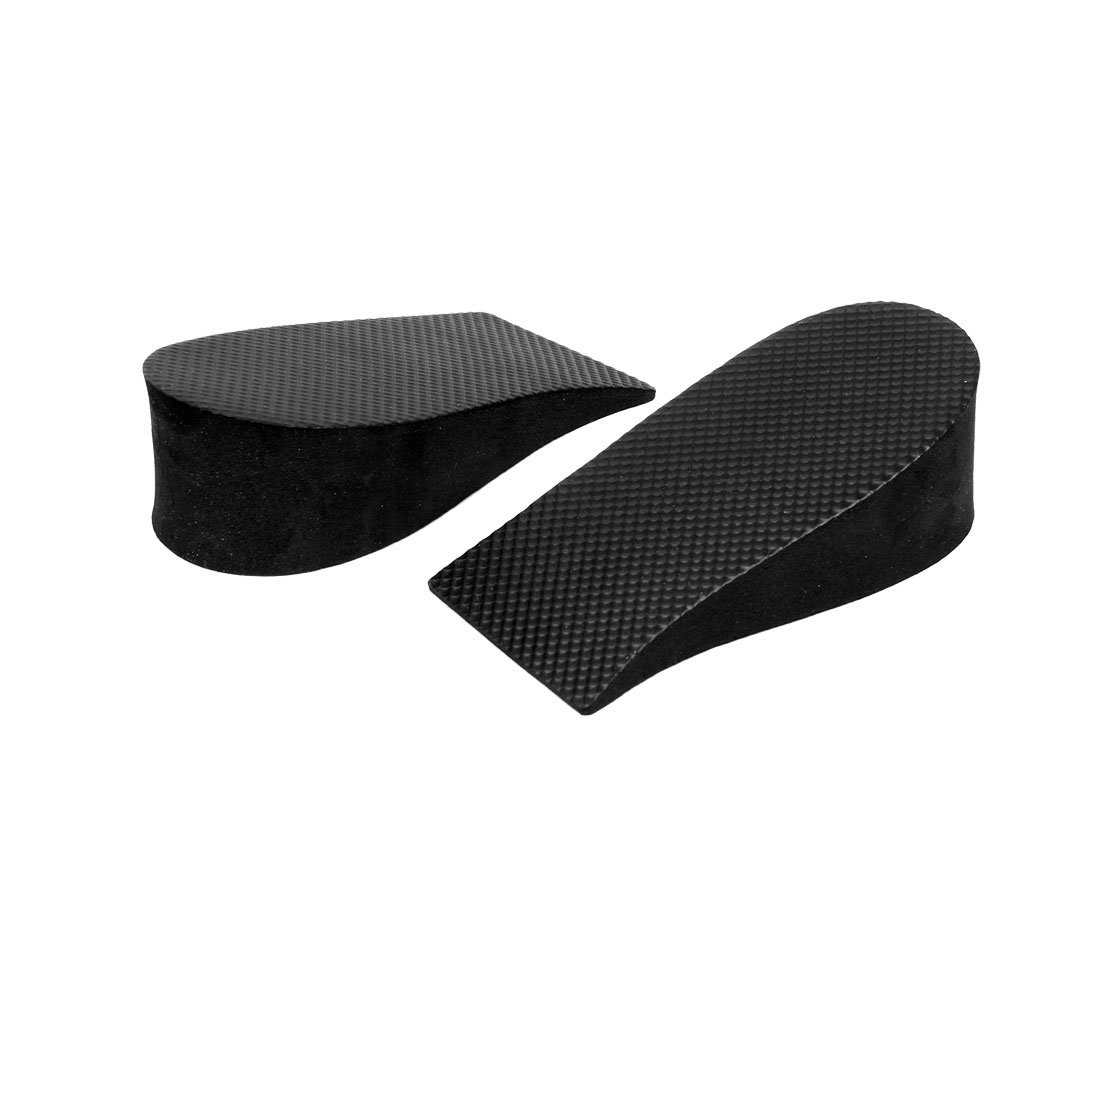 Fashion Boutique 2 Pcs 1.5 Height Increase Heel Lifts Foam Pads Insoles Black